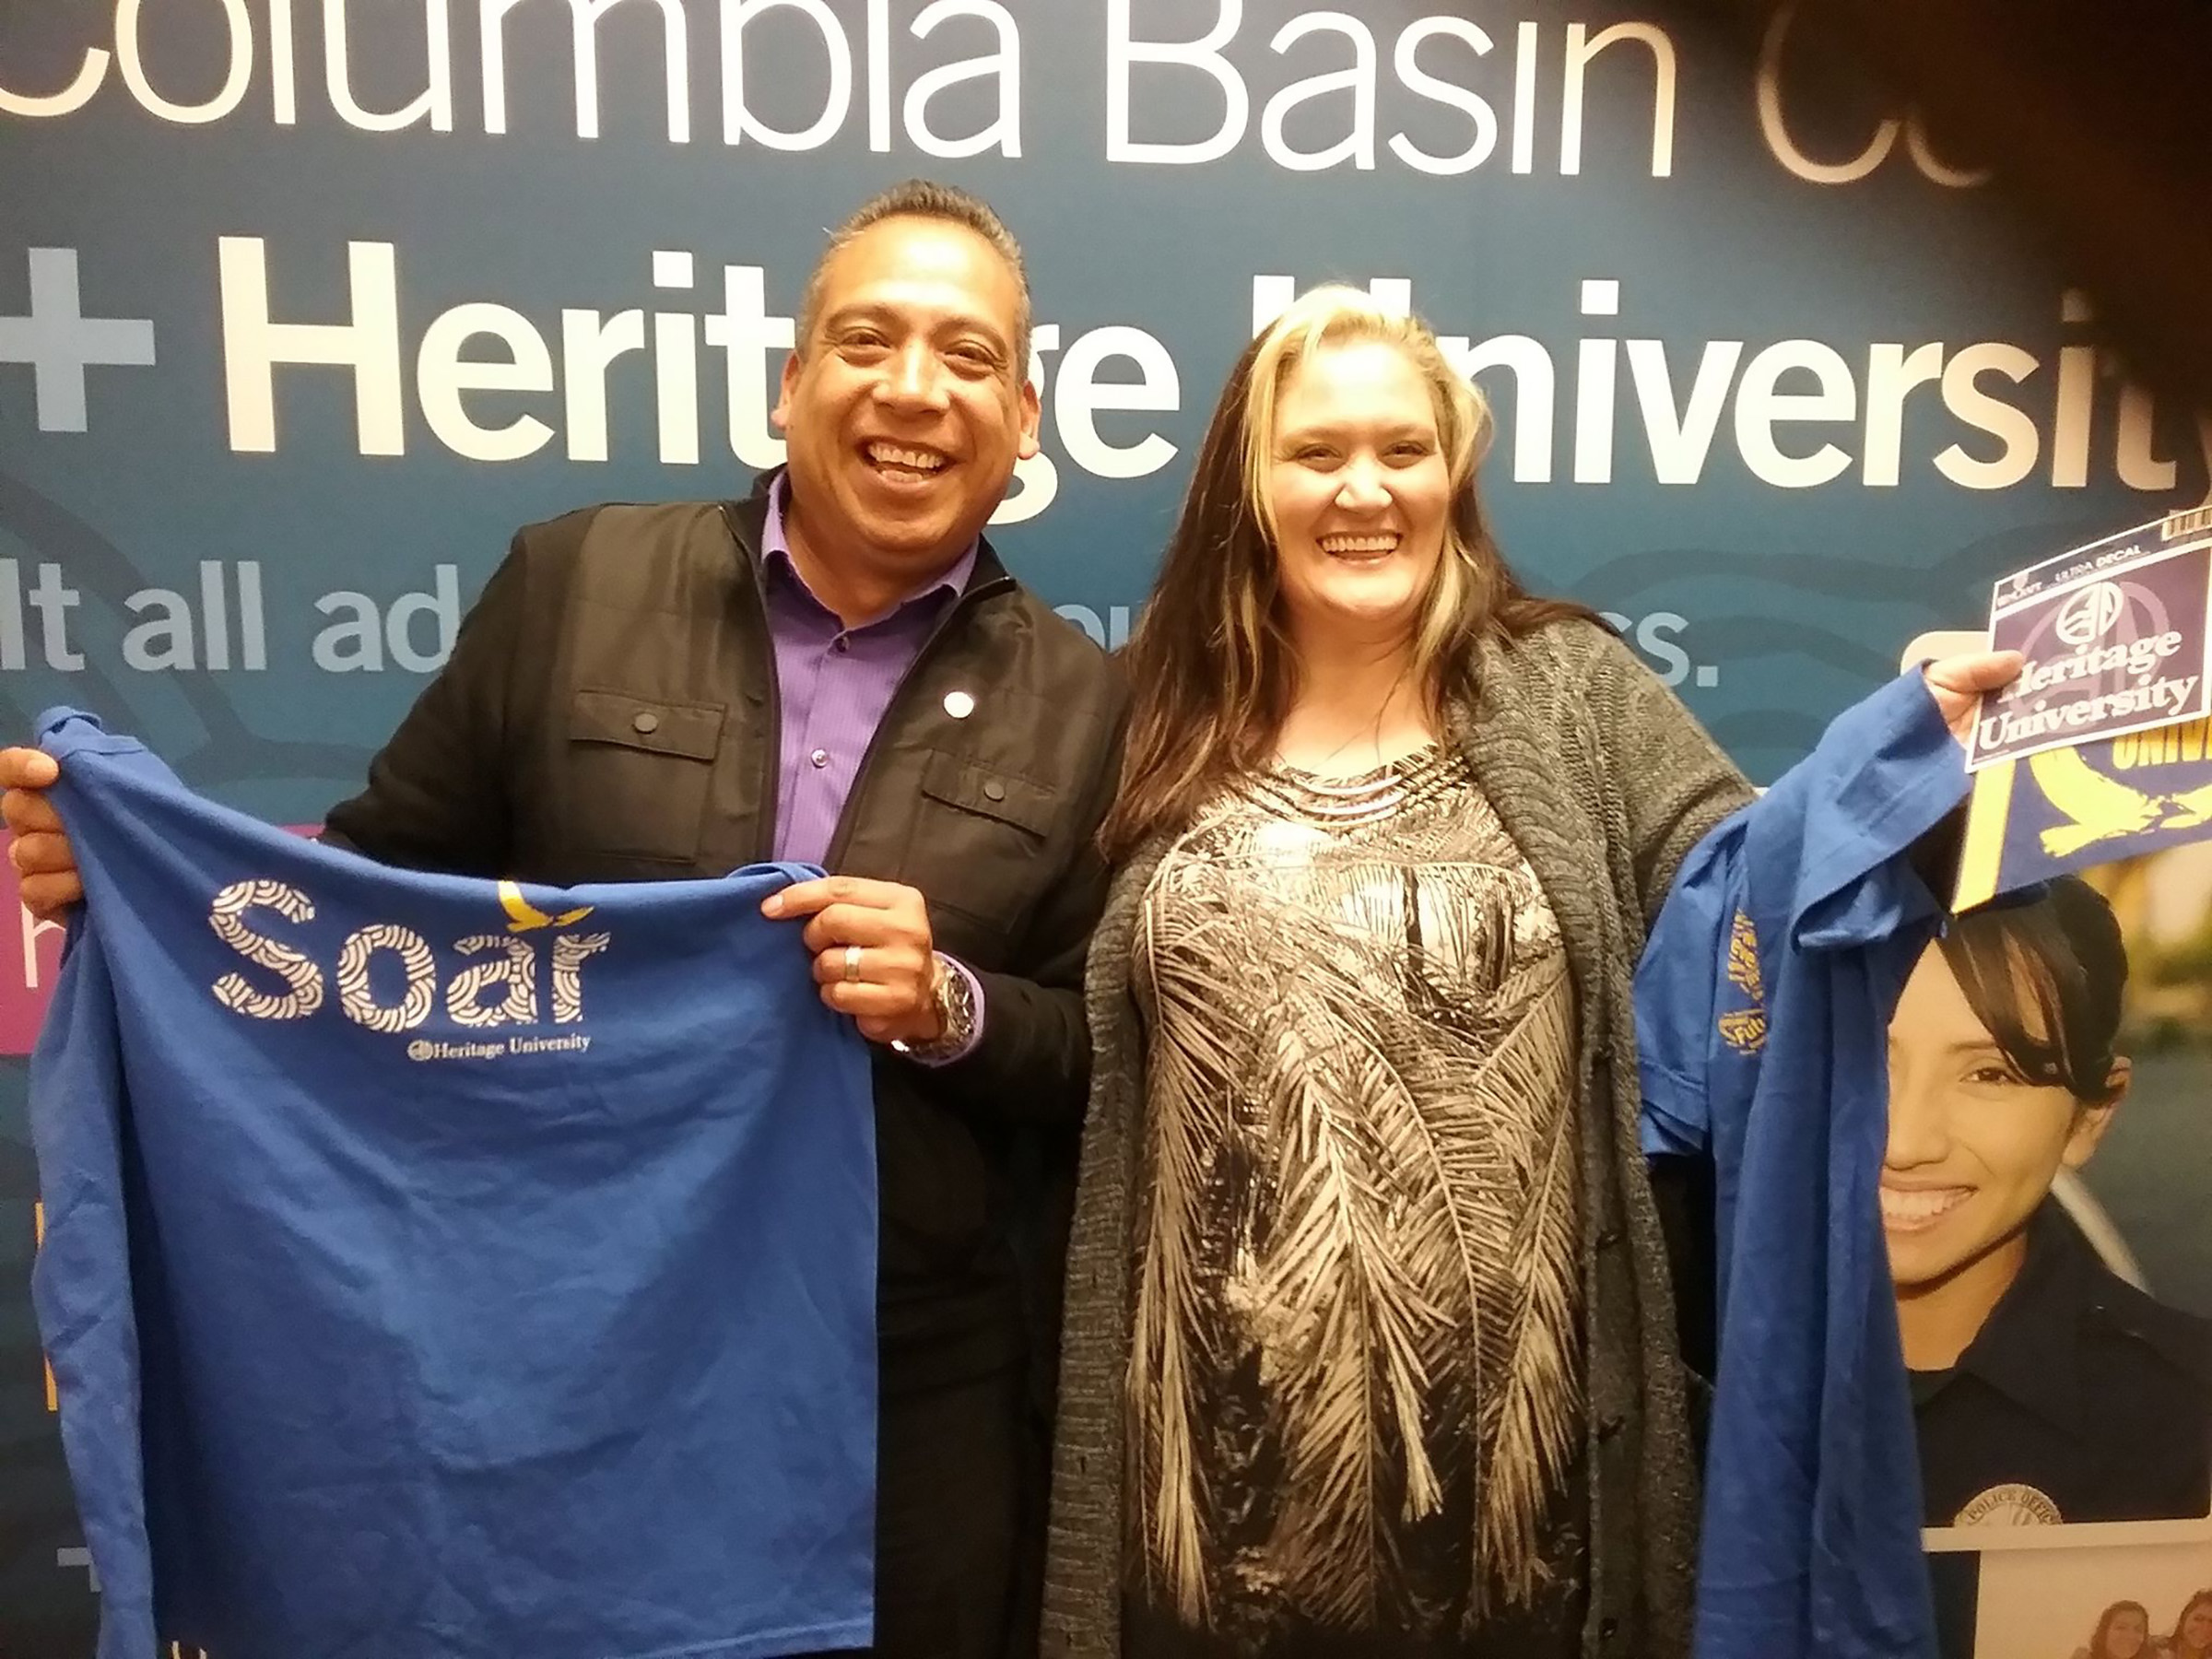 Miguel Juarez and a college hold up Heritage University T-shirts at Heritage's regional branch at Columbia Basin College in Pasco, Wash.